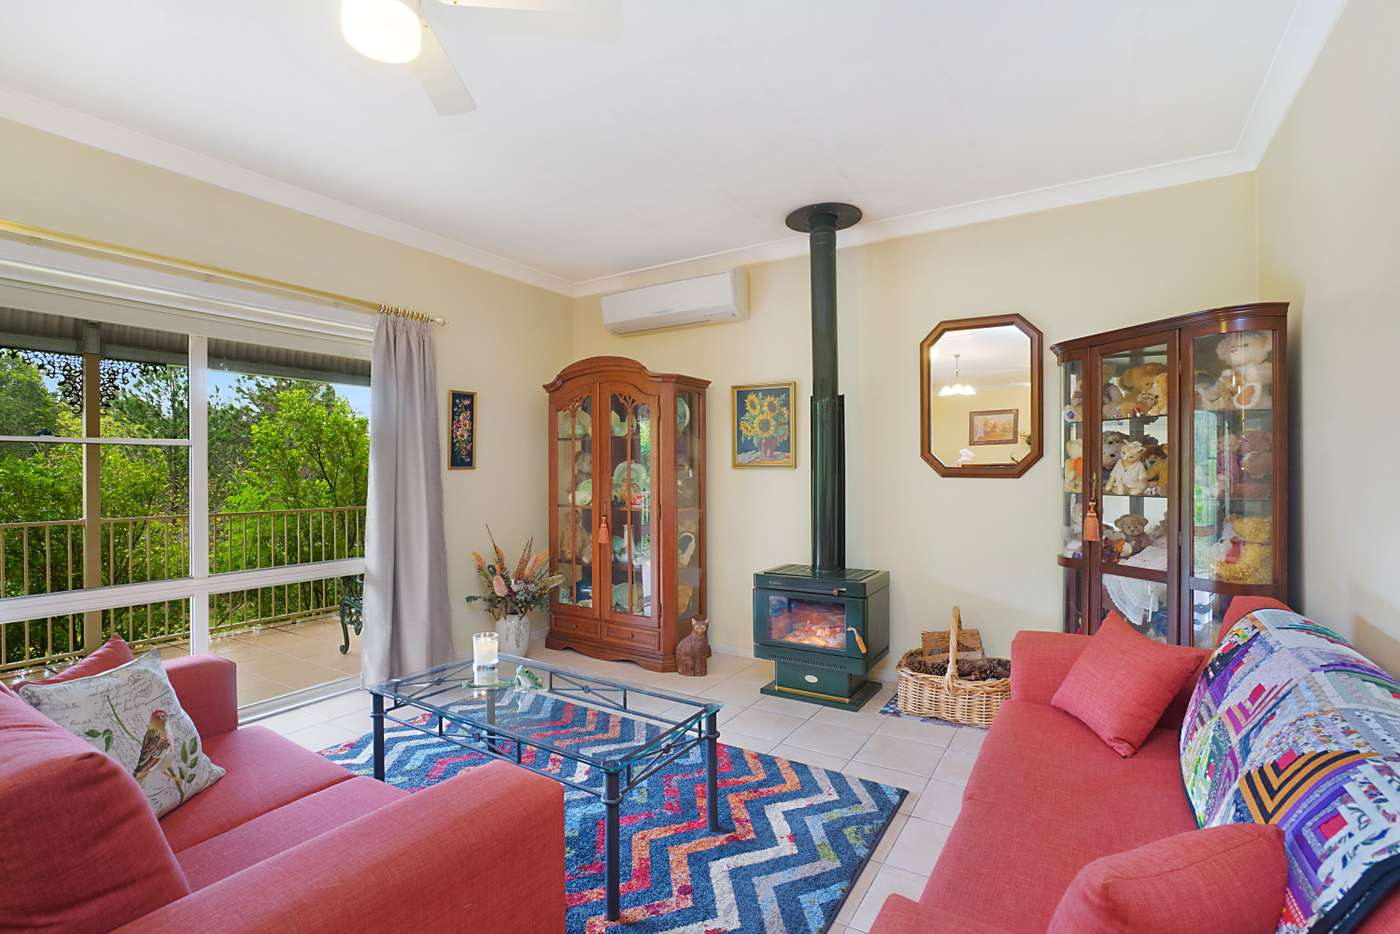 Sixth view of Homely house listing, 4 Warrigal Close, Brandy Hill NSW 2324